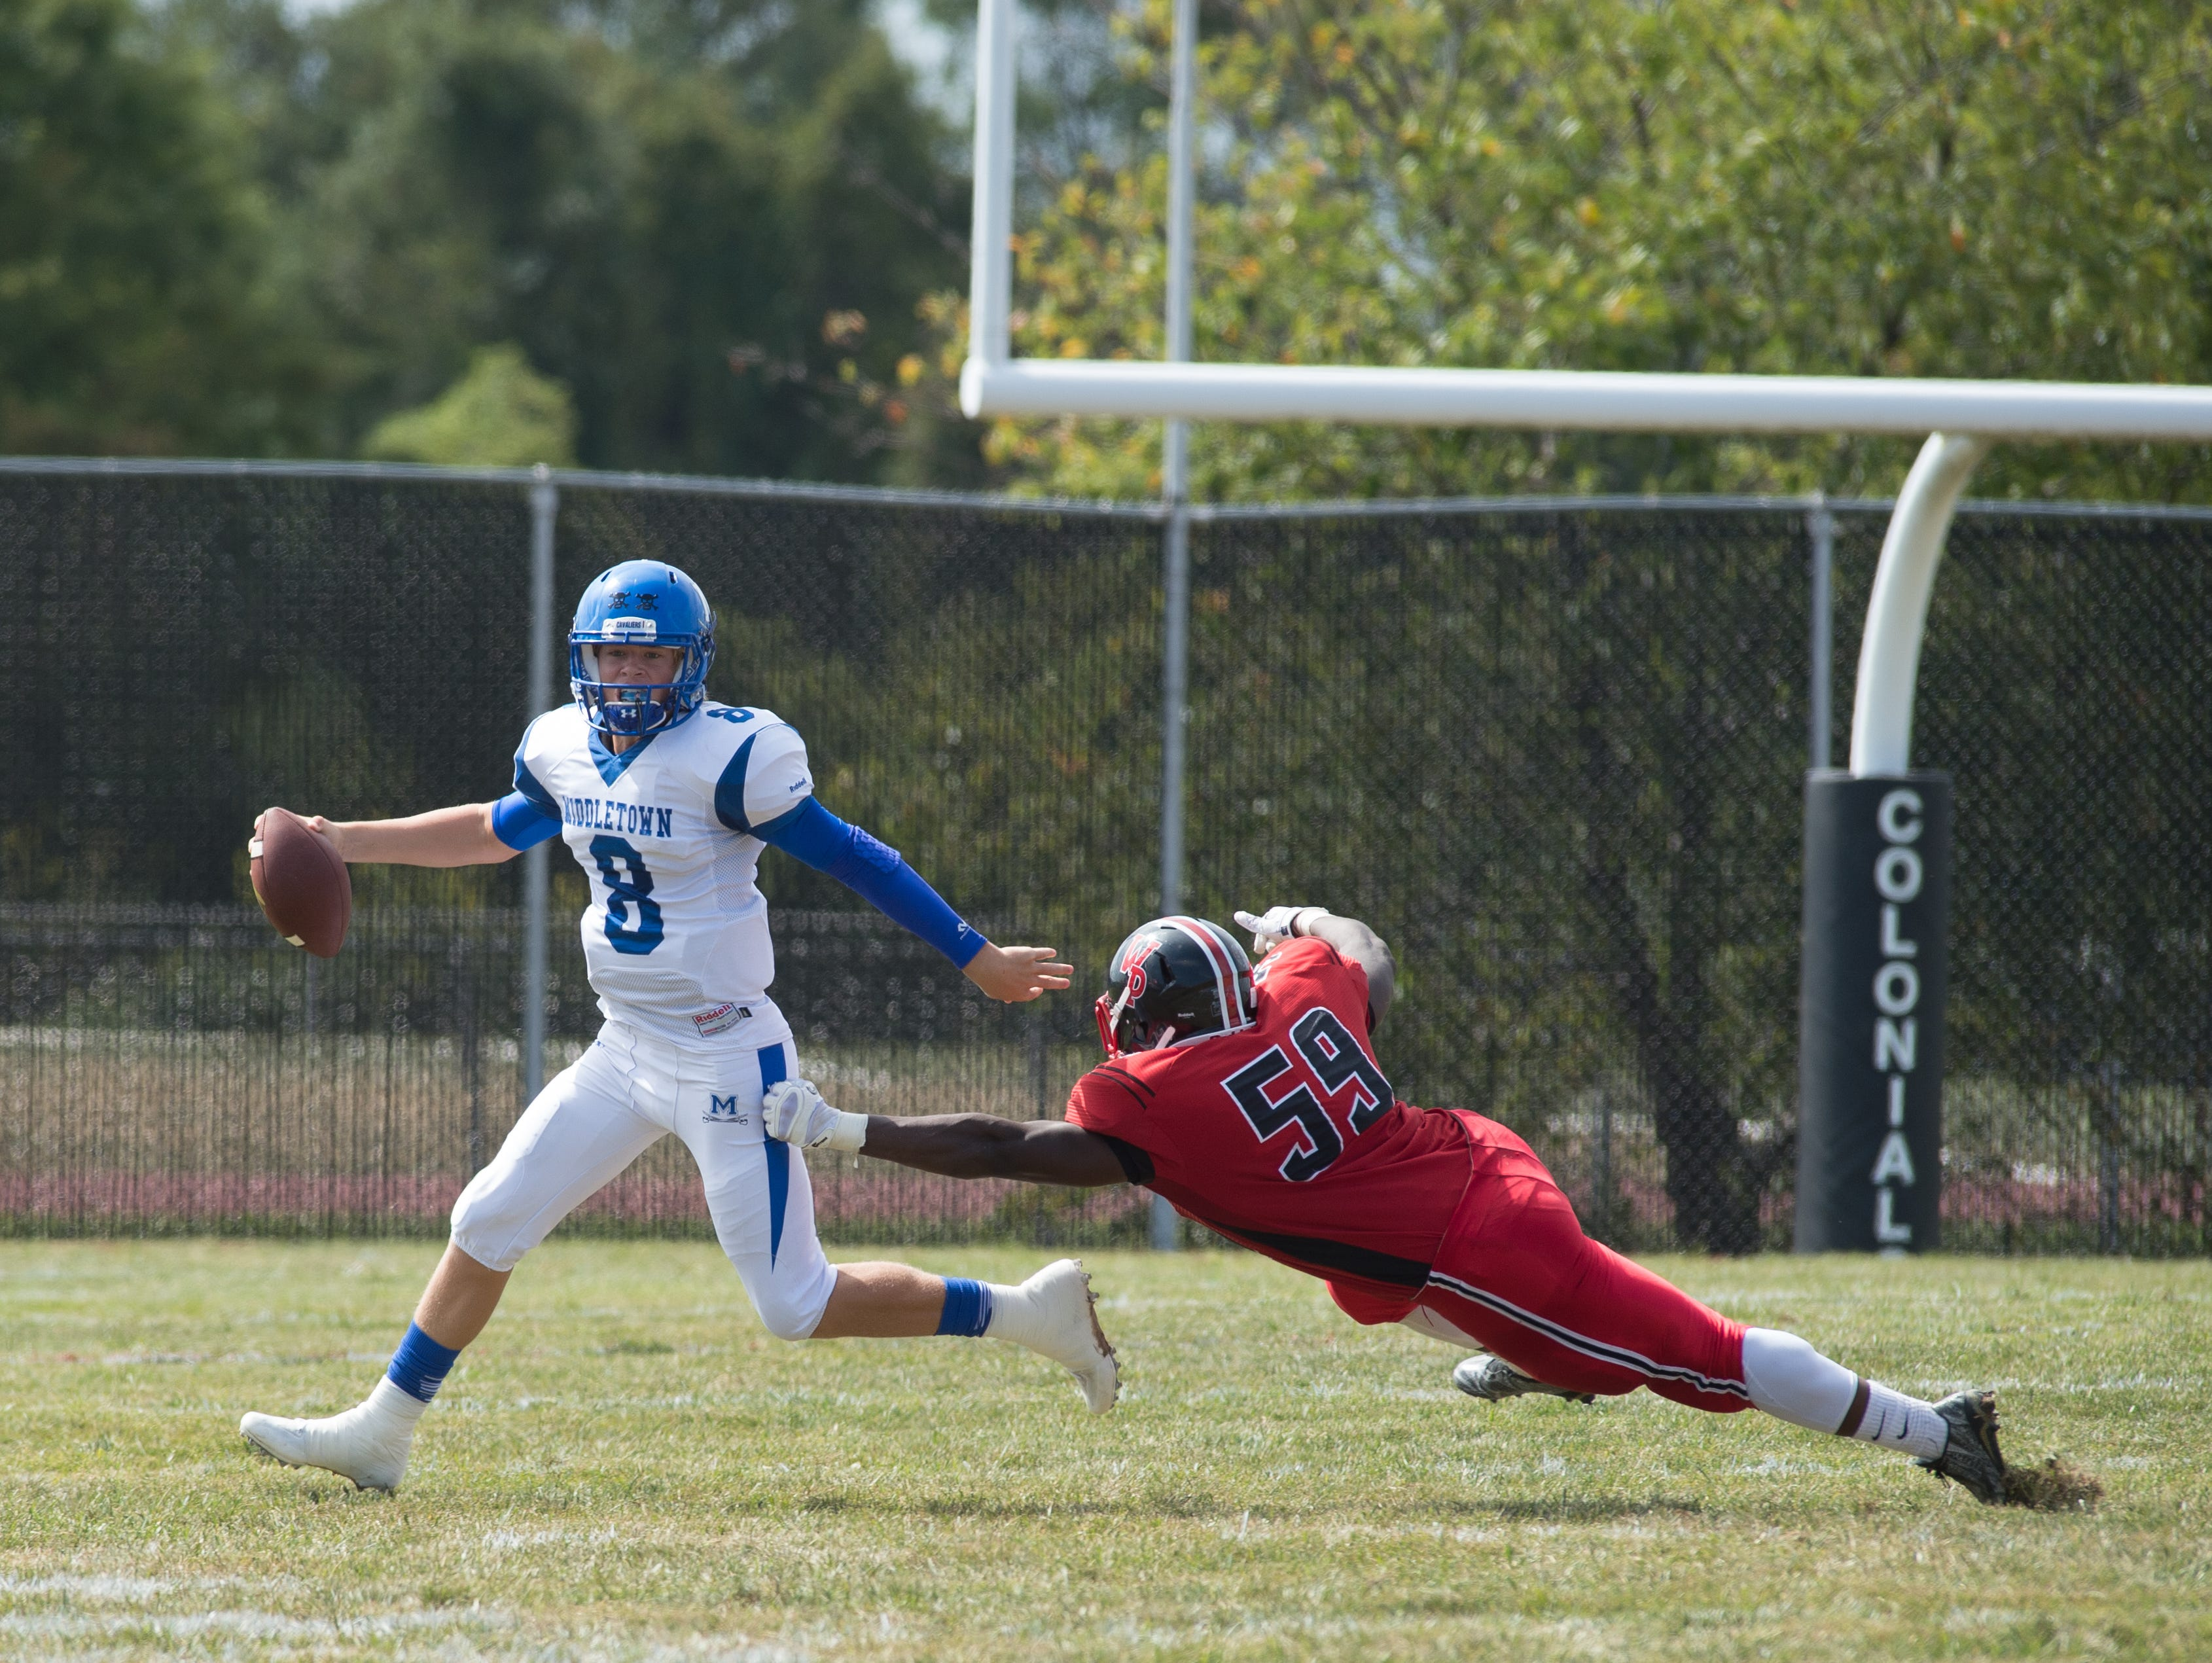 Middletown's quarterback Drew Fry (8) escapes a tackle from William Penn's Collins Adu-Gyamfi (59).